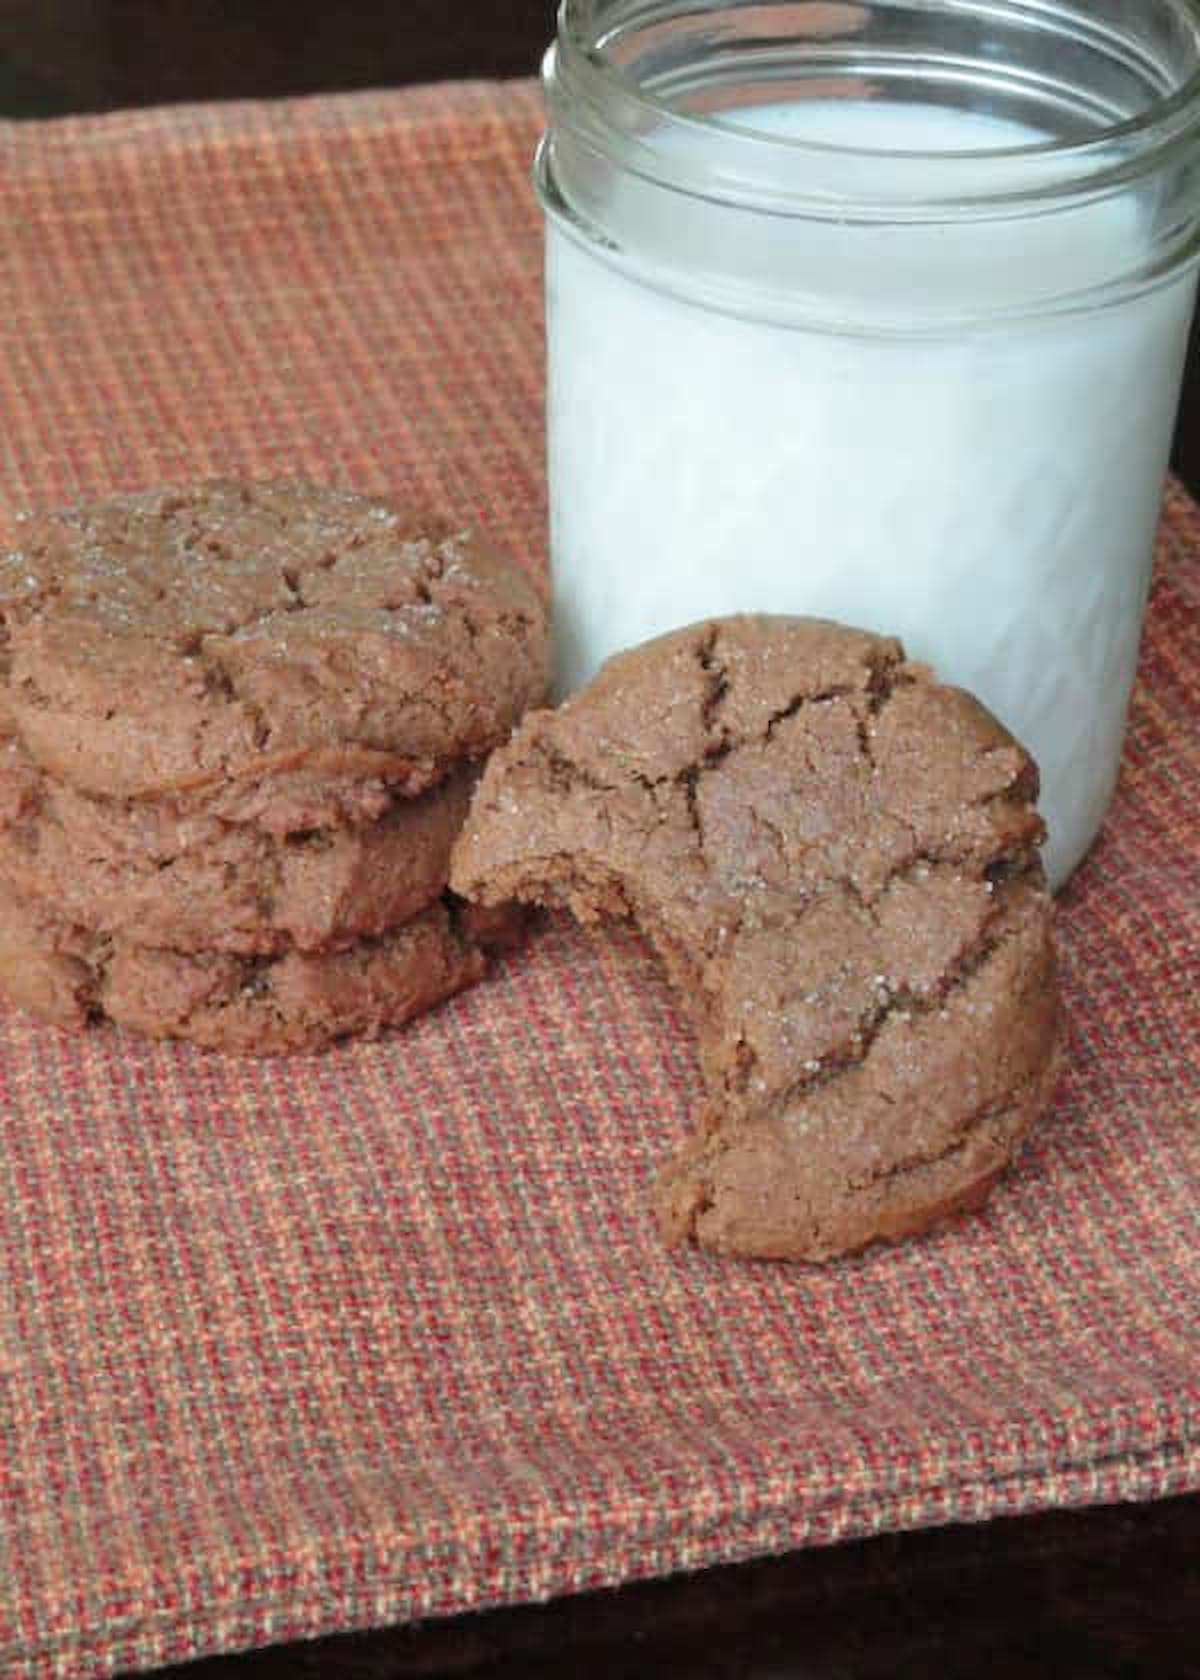 Molasses Cookies stacked on an orange kitchen towel with one Molasses Cookie resting on its side with a bite missing.